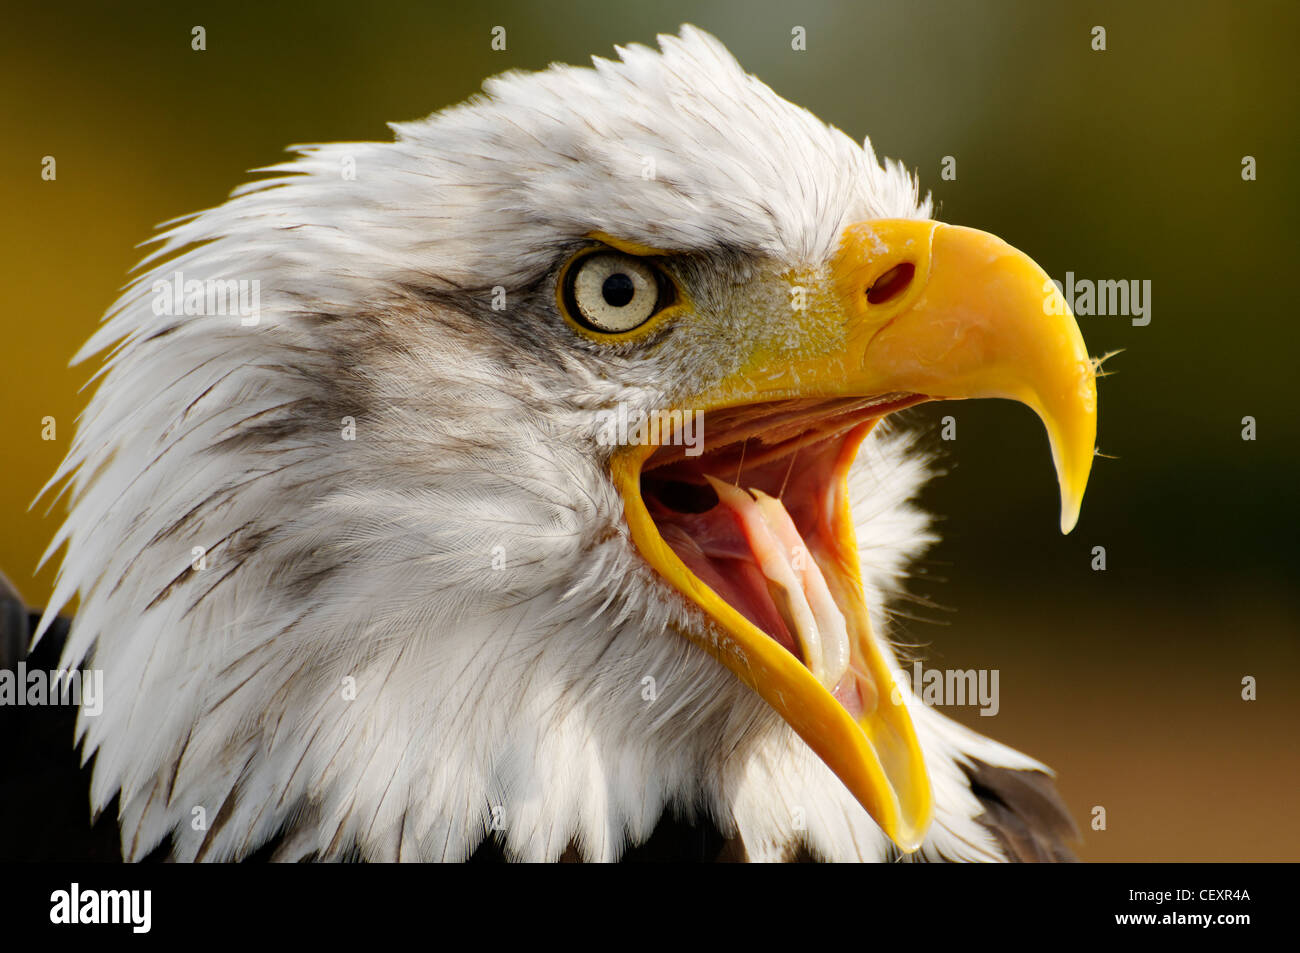 Eagle With Mouth Open Eagles Tongue Fierce Looking Beak Stock Photos ...